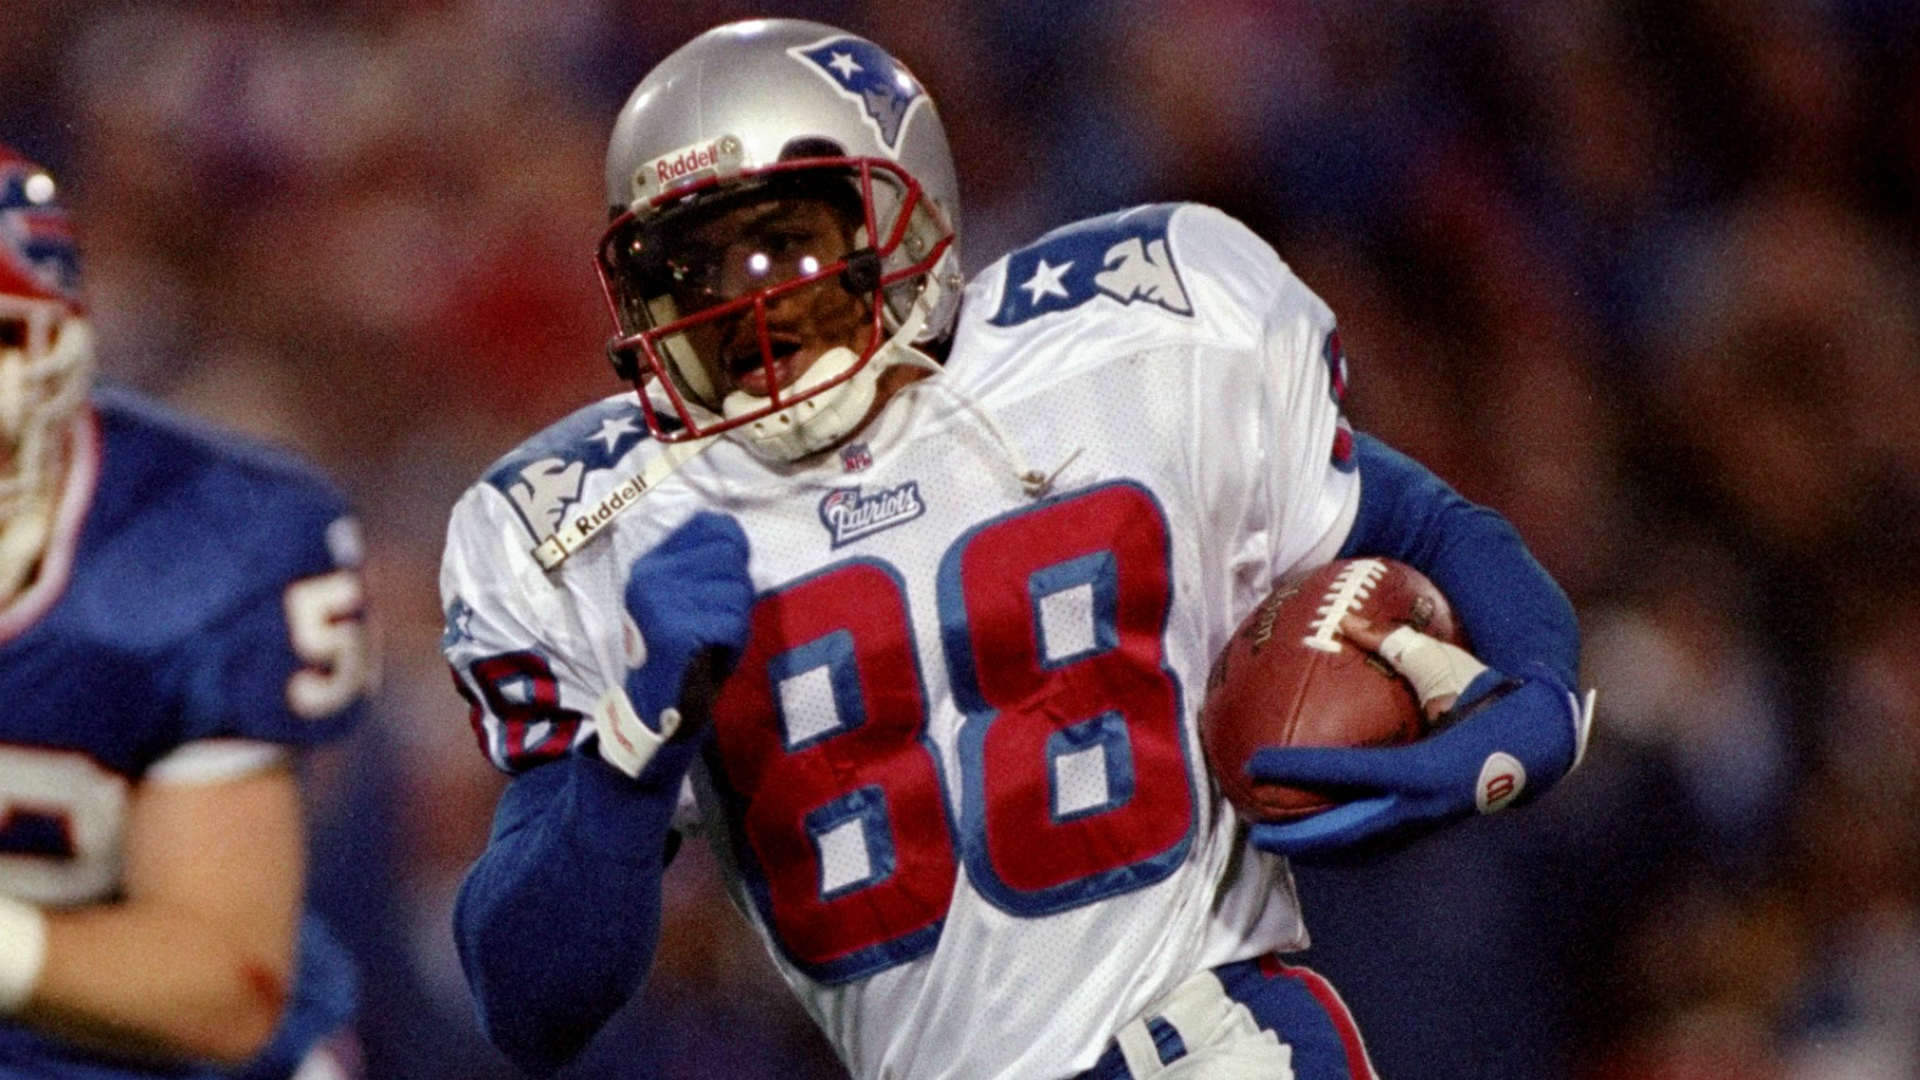 Former Ohio State Buckeye WR Terry Glenn killed in auto crash